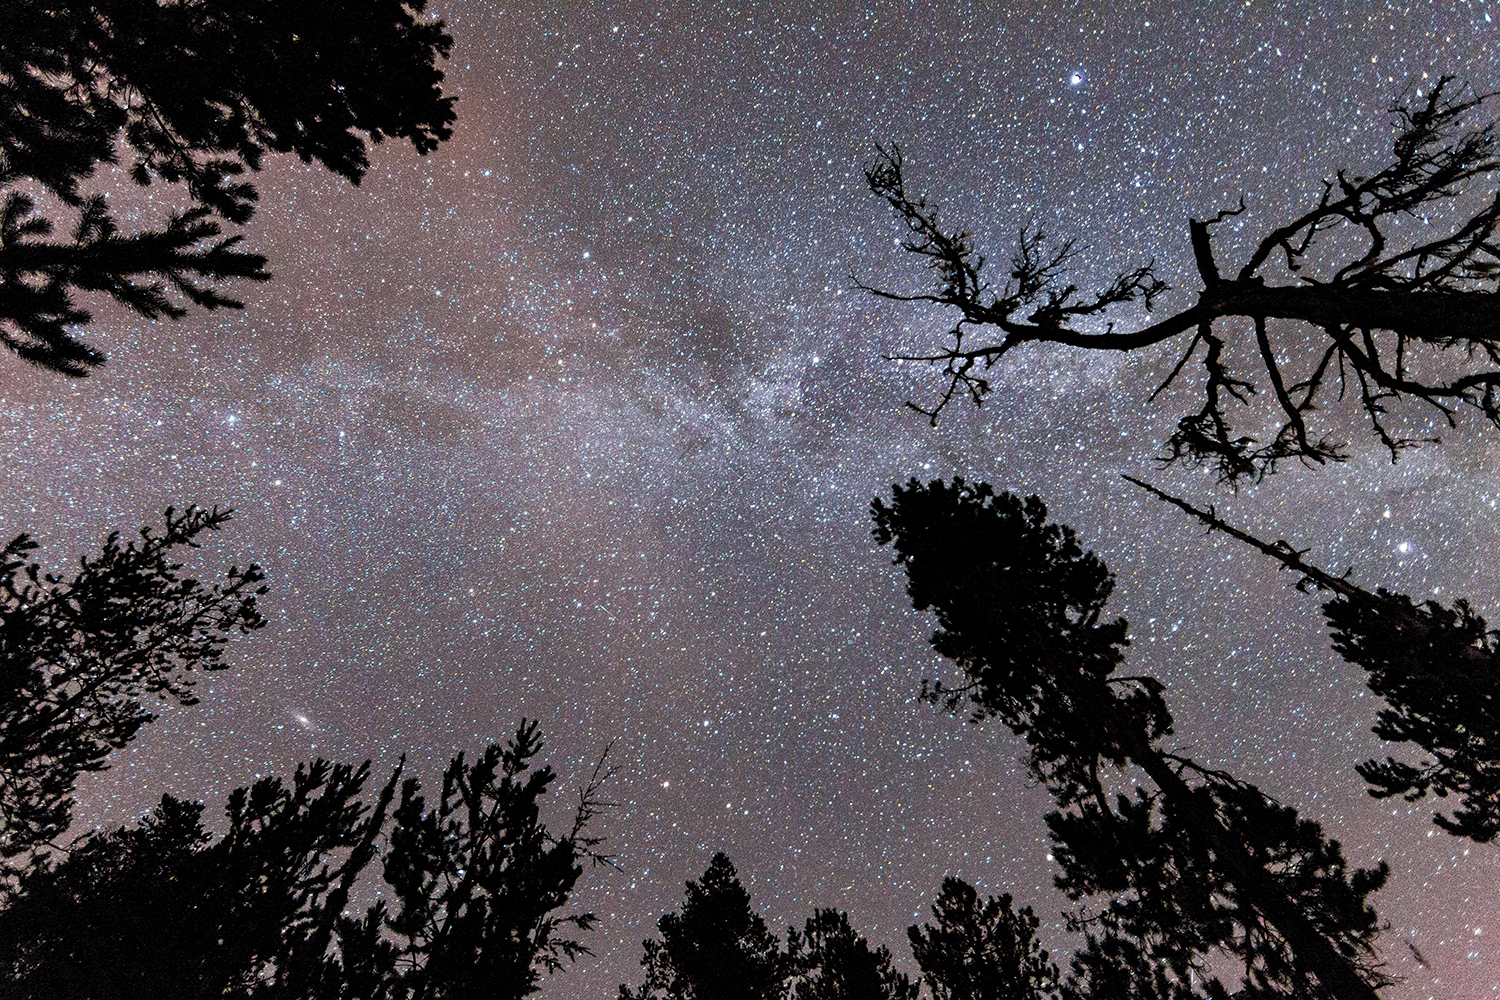 Trees silhouetted by the Milky Way, Terrace, BC.